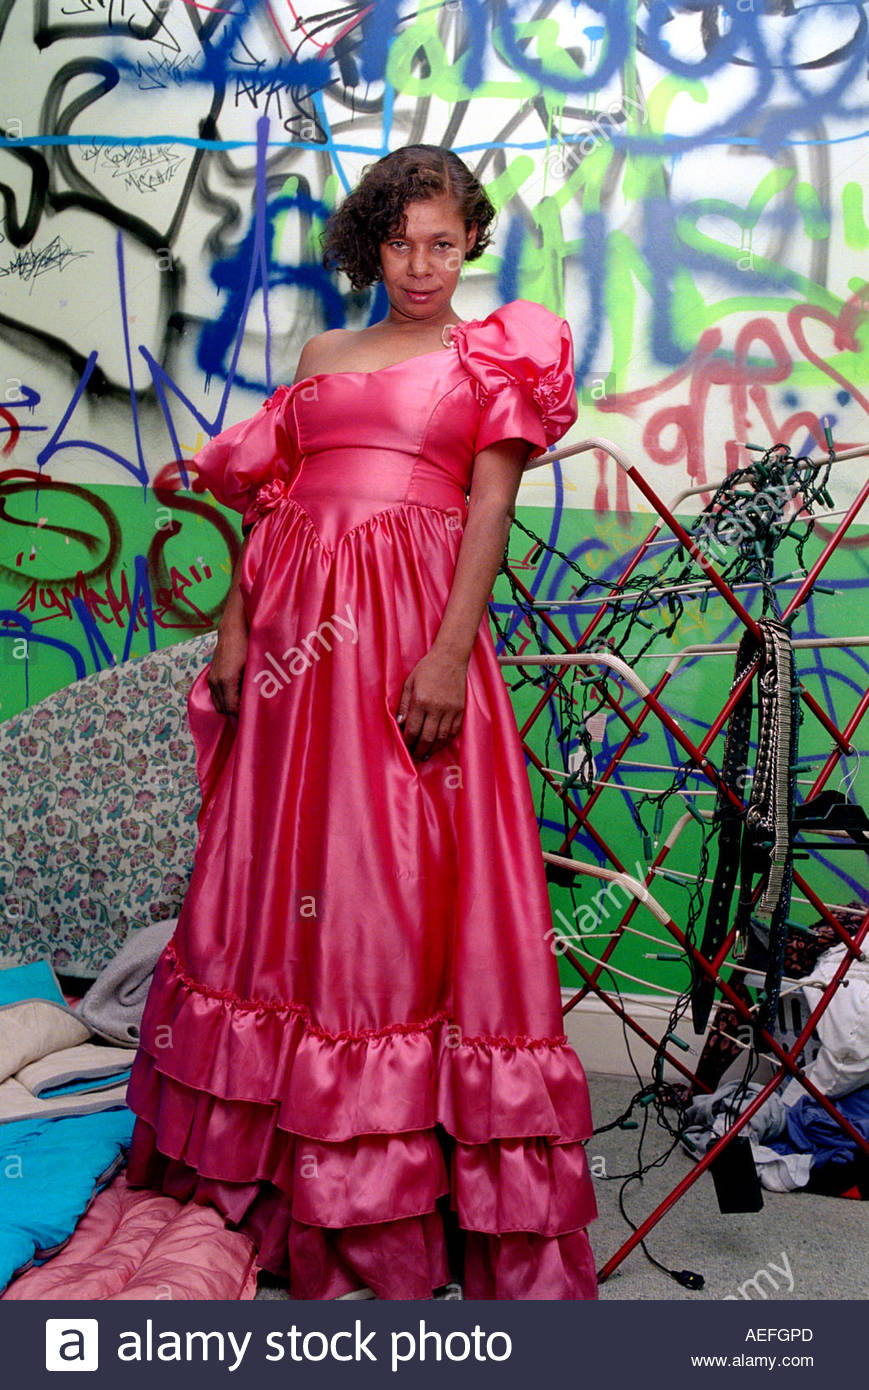 Young woman trying on a pink ball gown in a temporary squat. Stock Photo